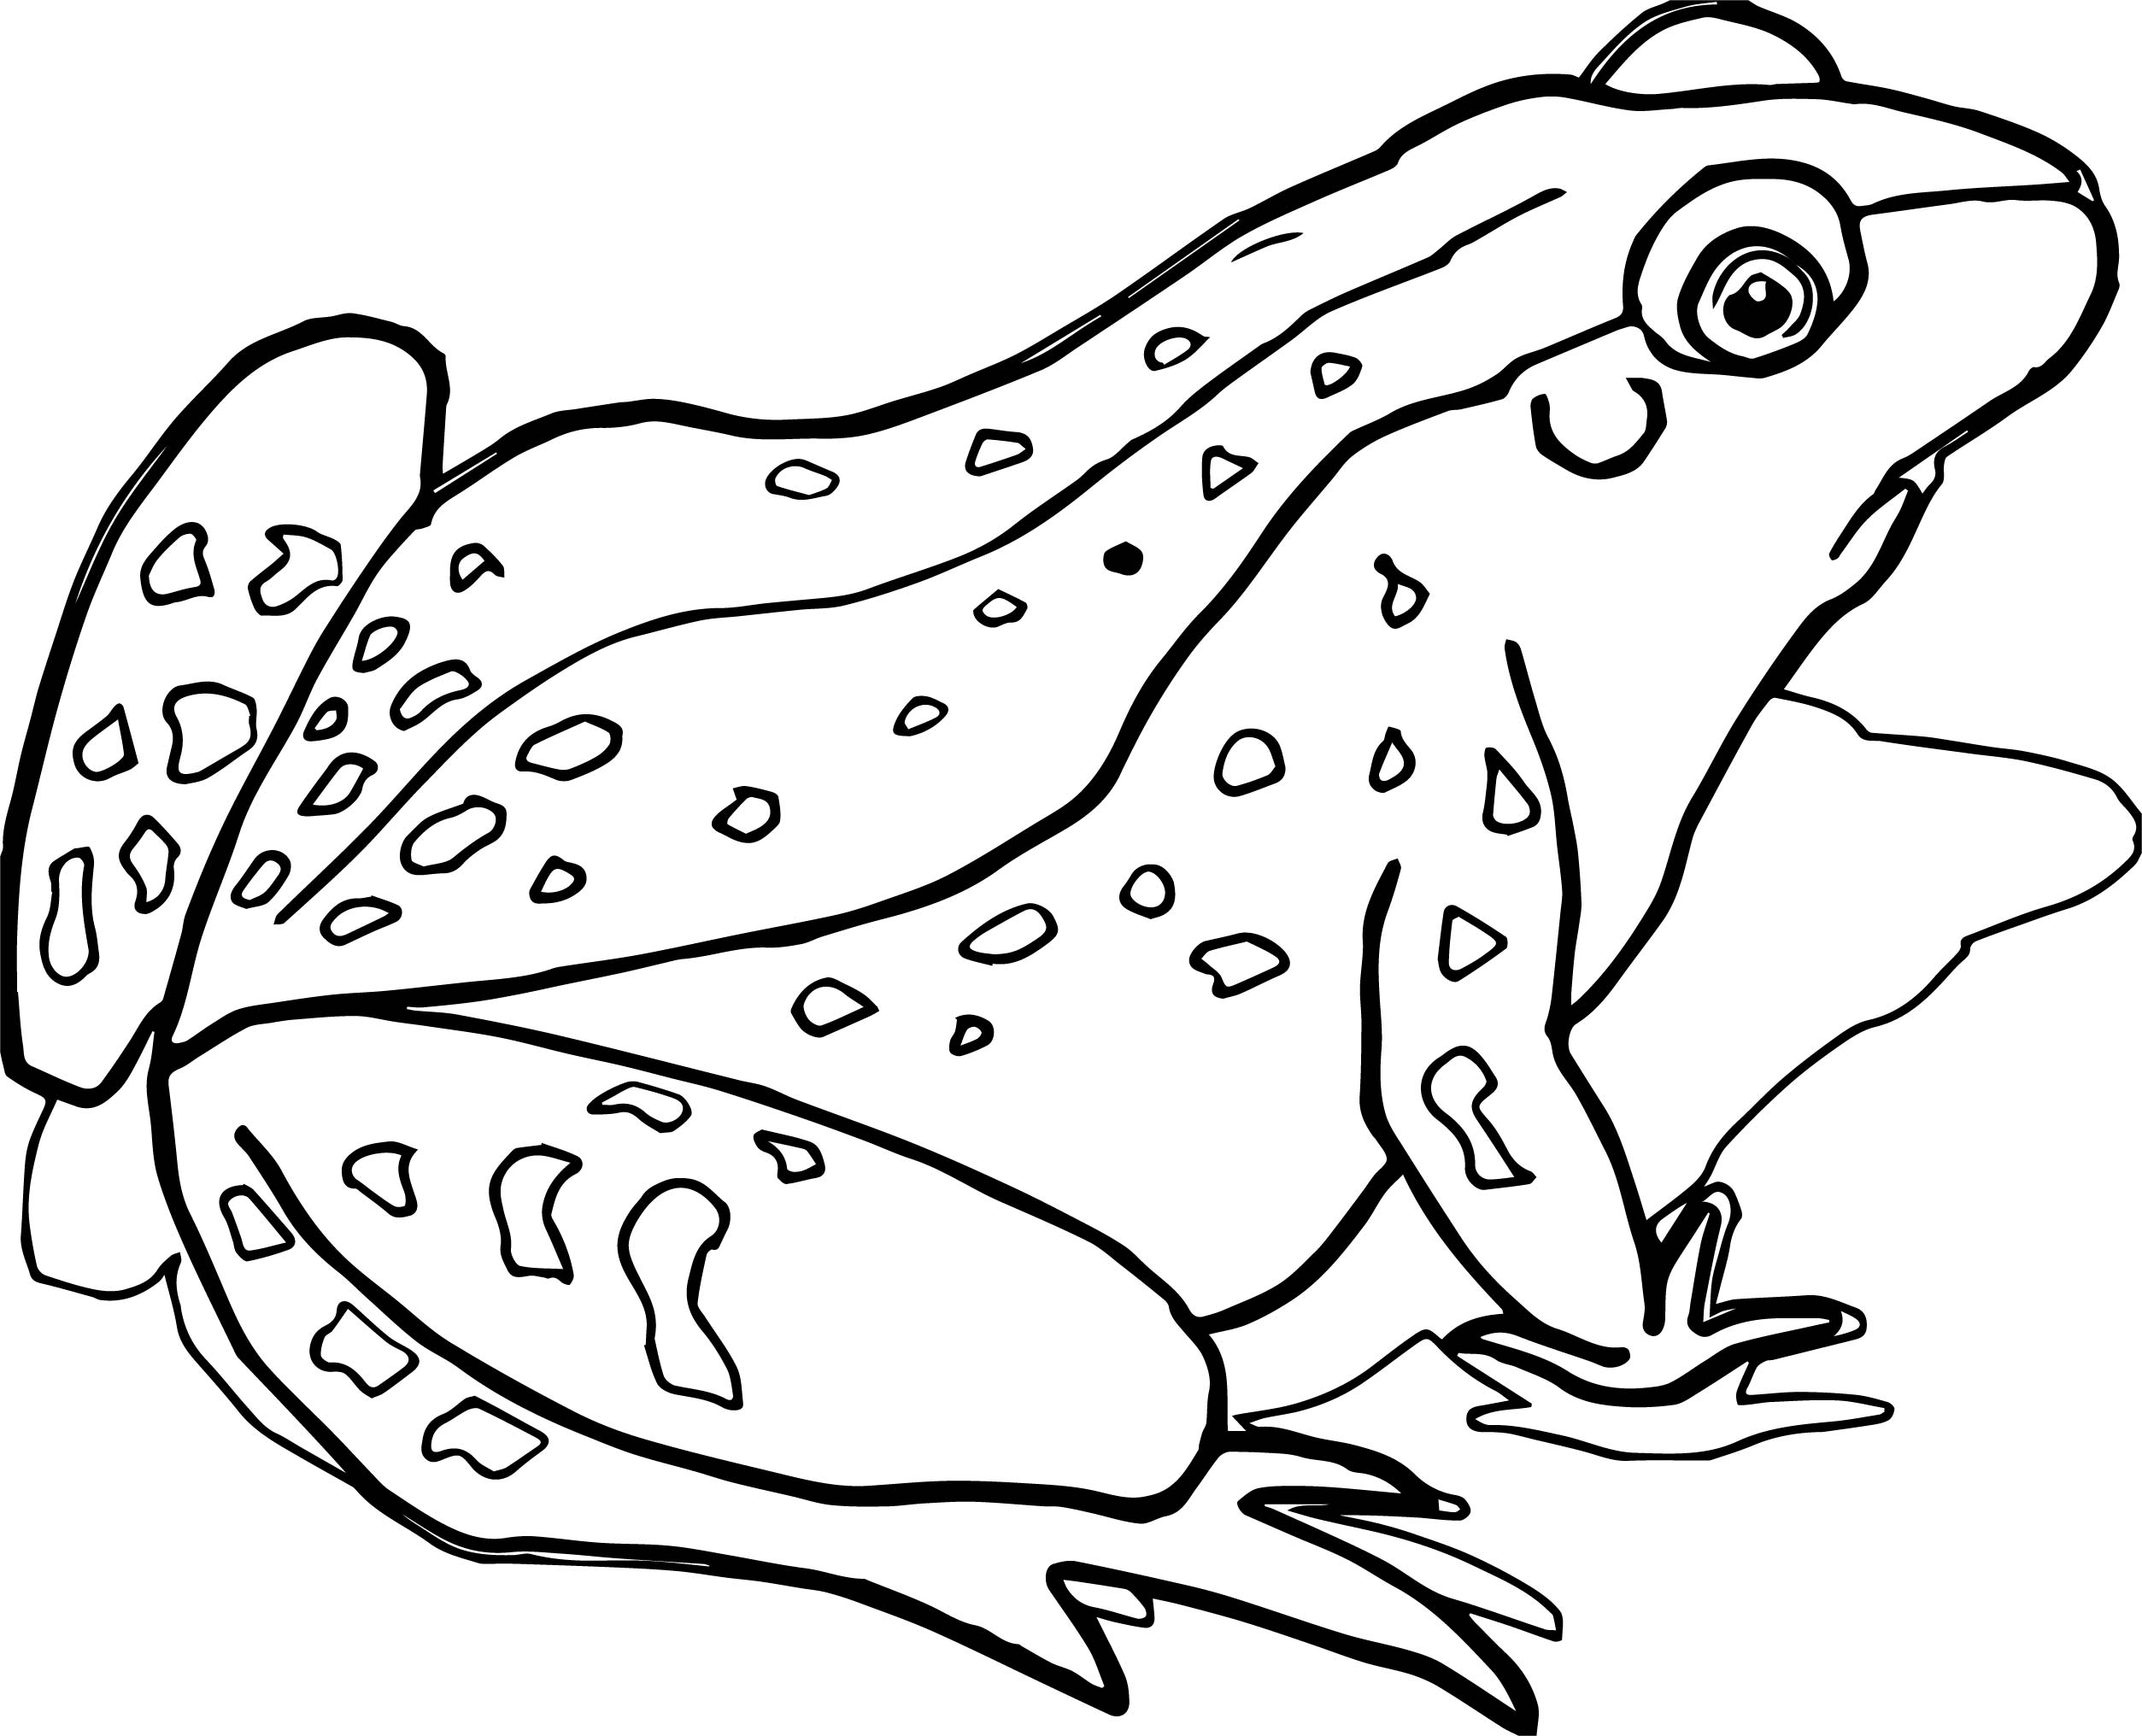 amphibian coloring pages | Amphibian Pages Realistic Coloring Pages